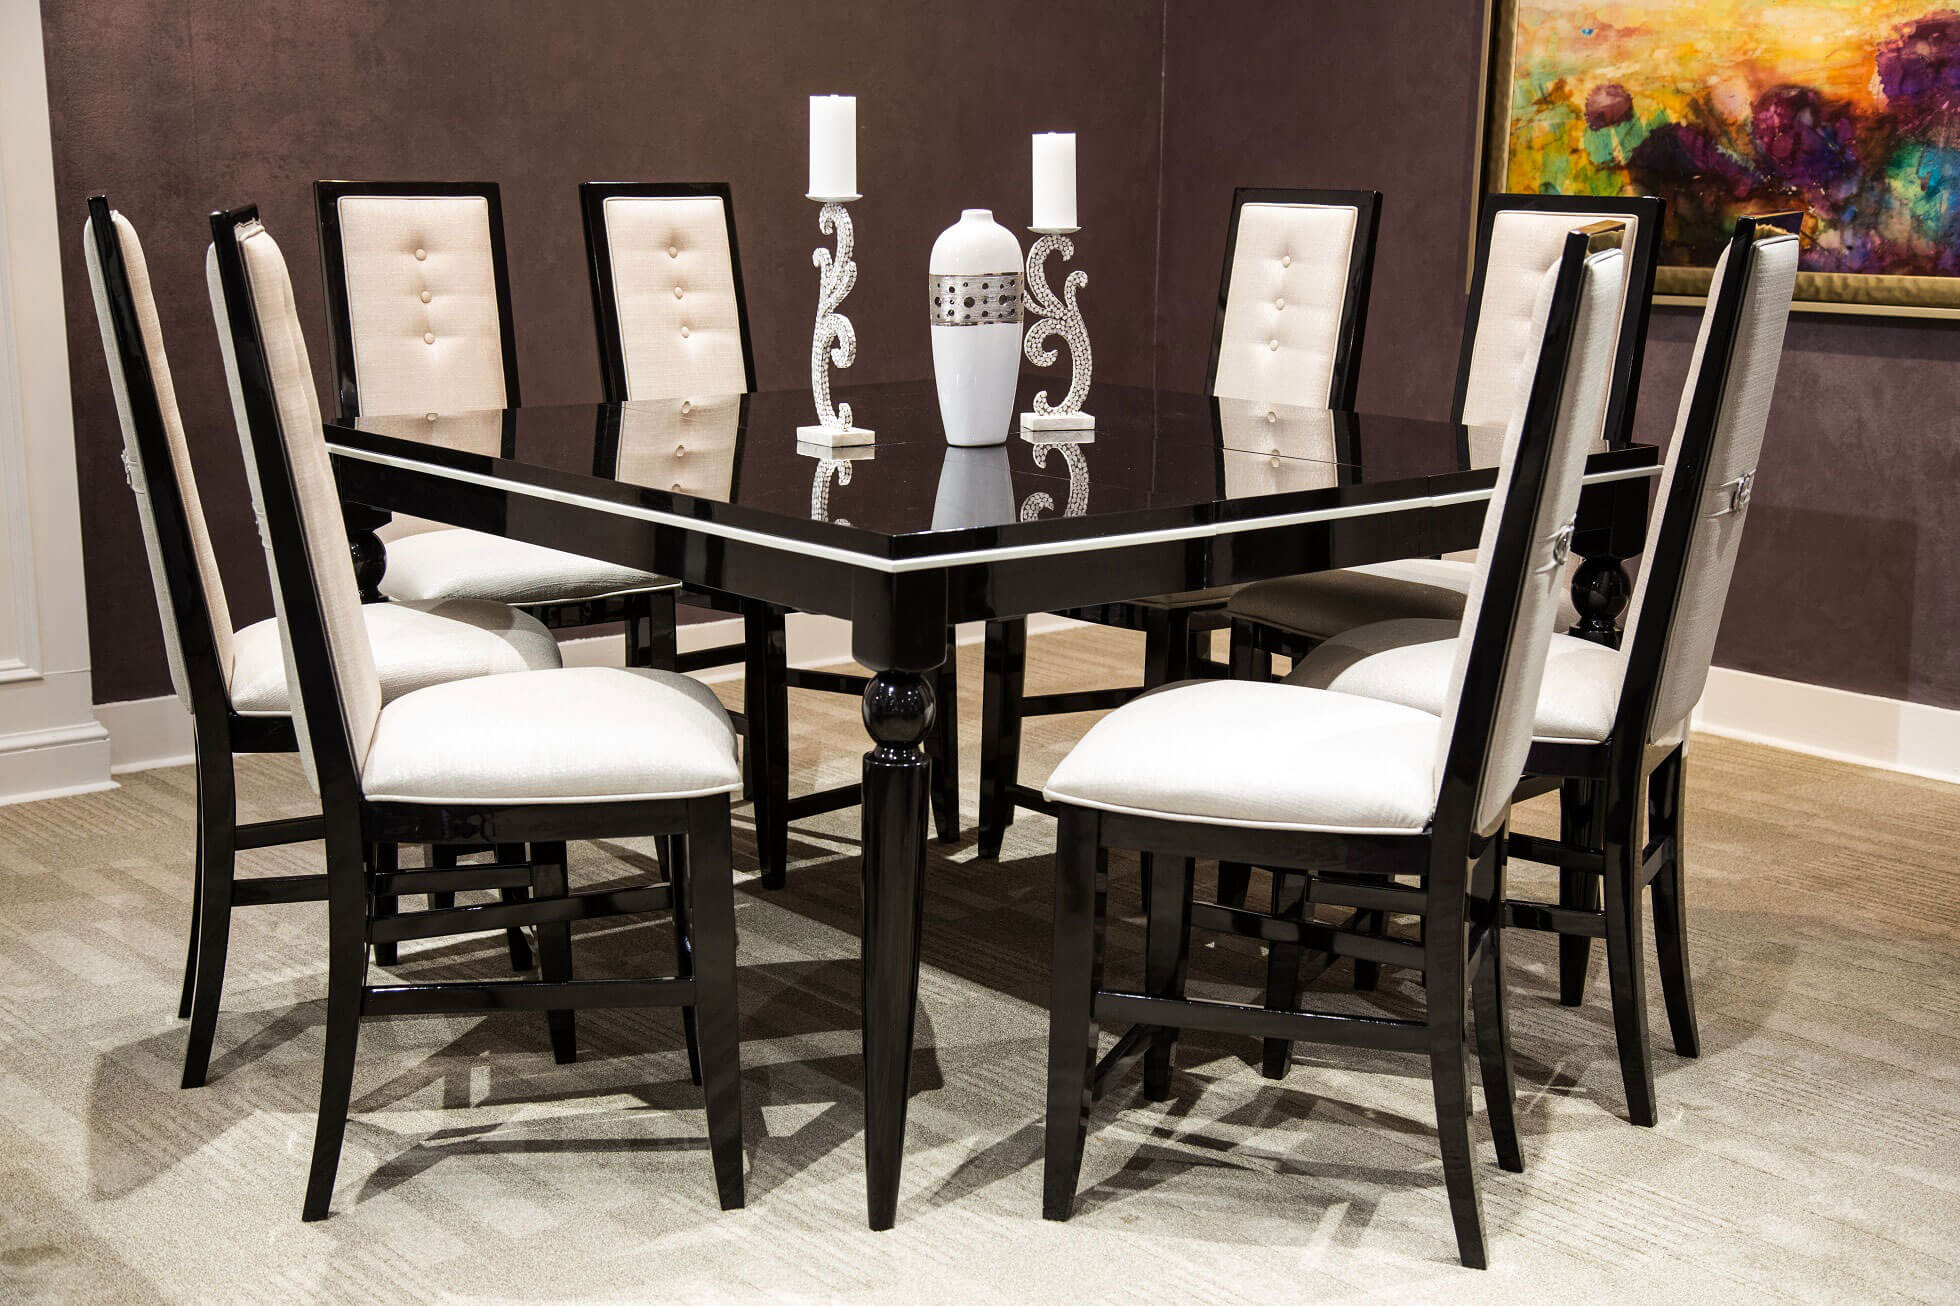 Sky Tower Black Ice Gathering Dining Set & Sky Tower Black Ice Gathering Dining Set AICO-9025606-805 u2022 USA ...